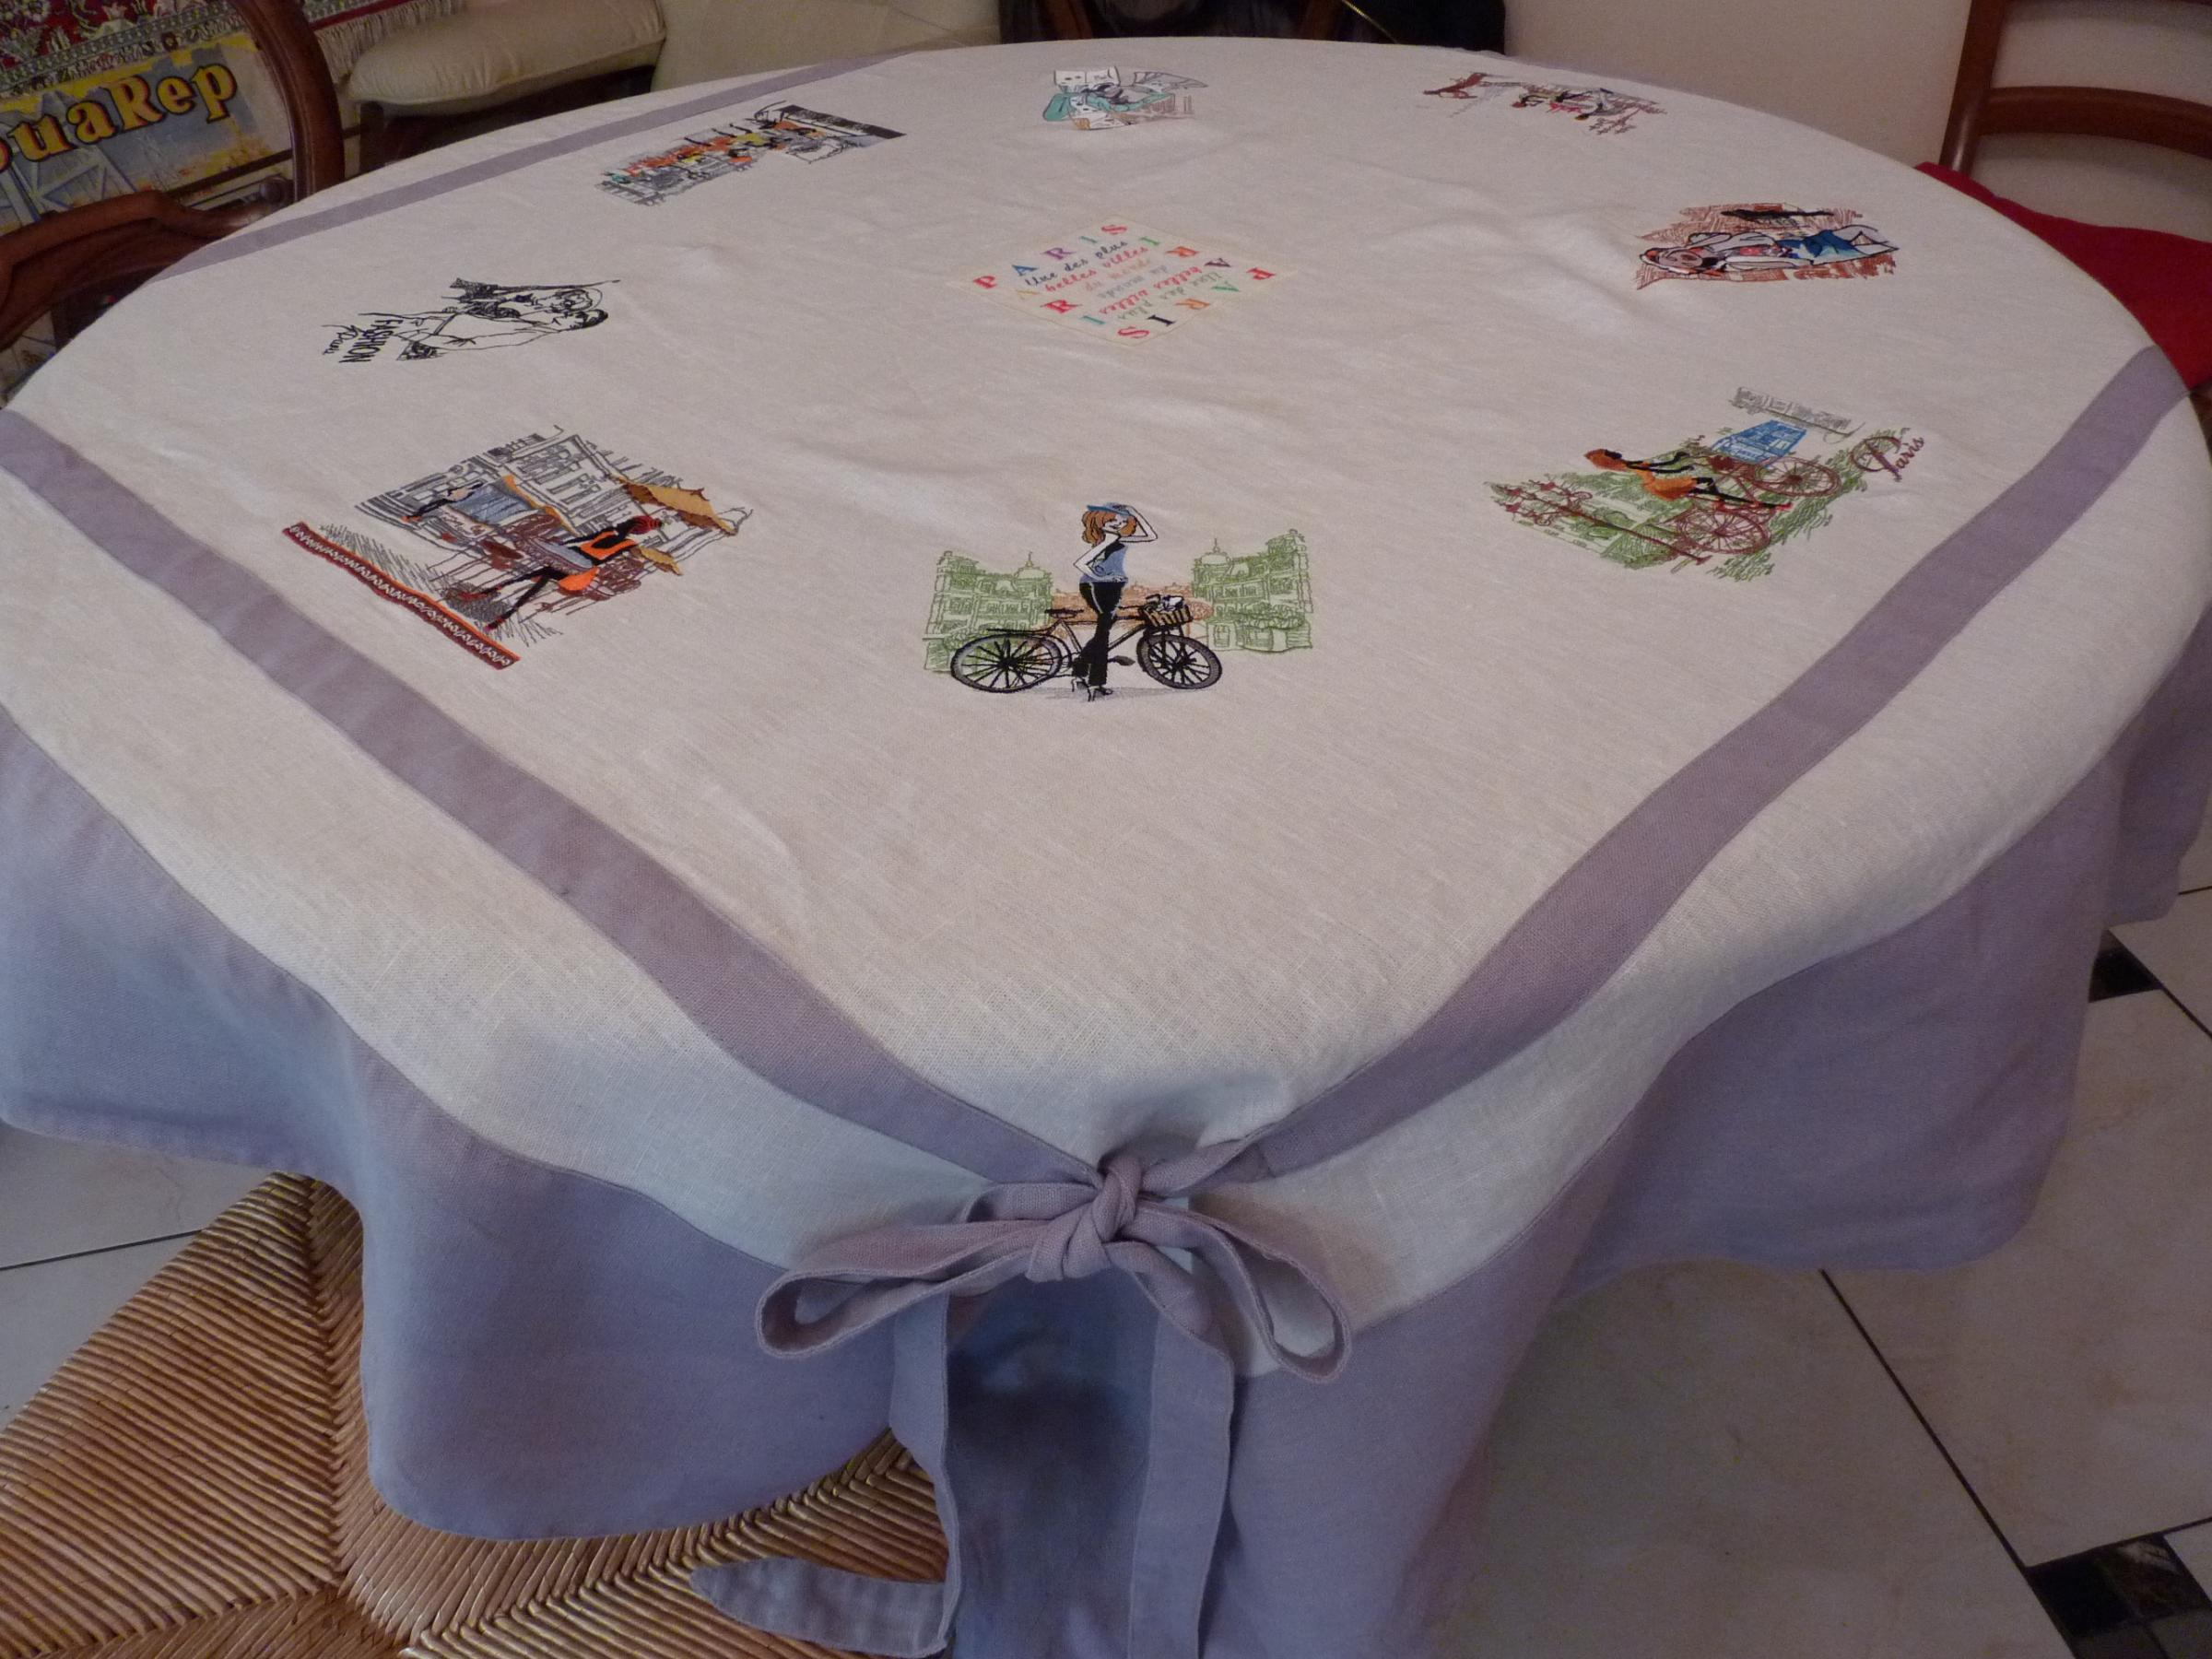 Embroidered tablecloth with city view designs